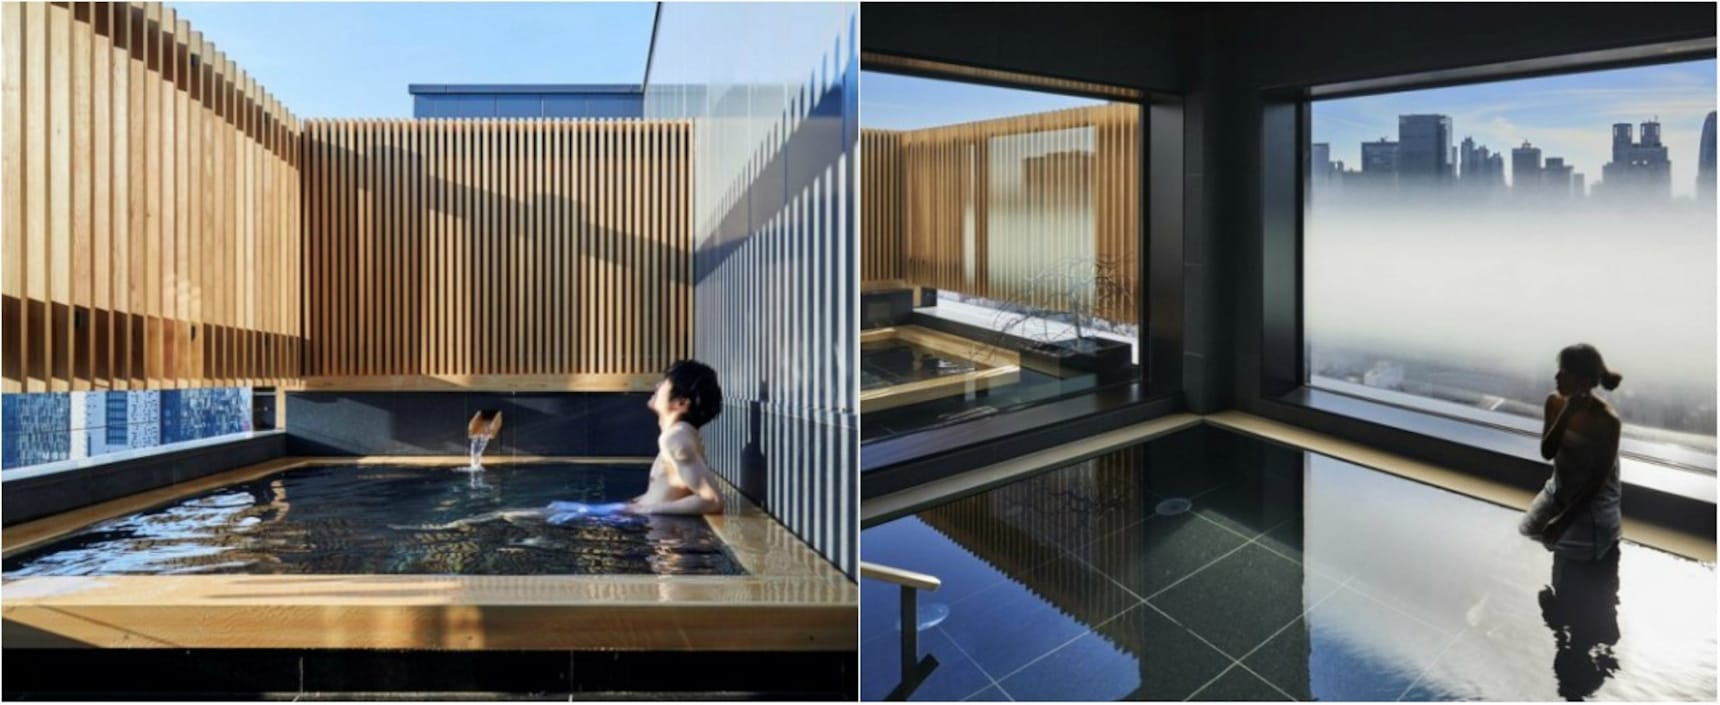 Luxurious Onsen Hotel in the Heart of Tokyo